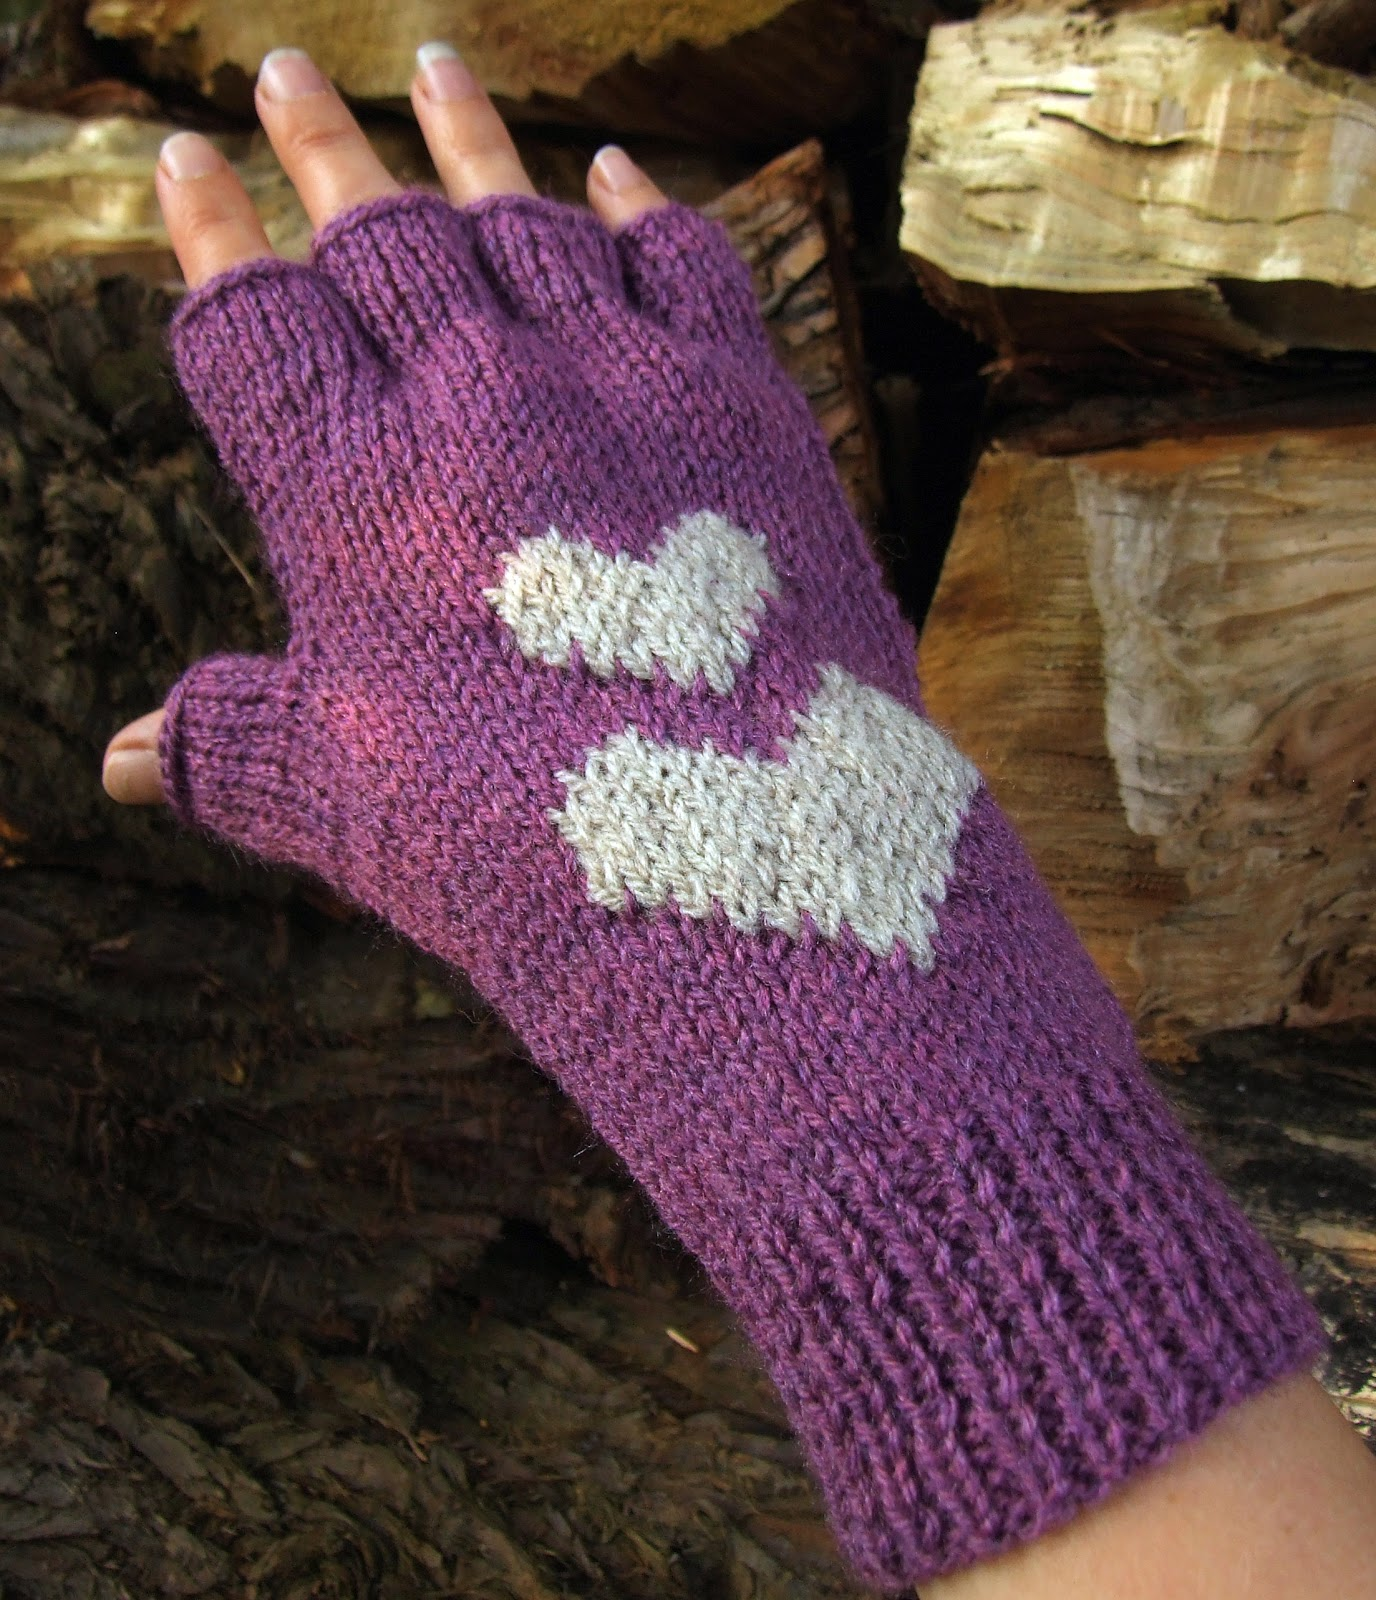 Hearts Fingerless Gloves - Knitting Pattern - WoolnHook by Leonie Morgan